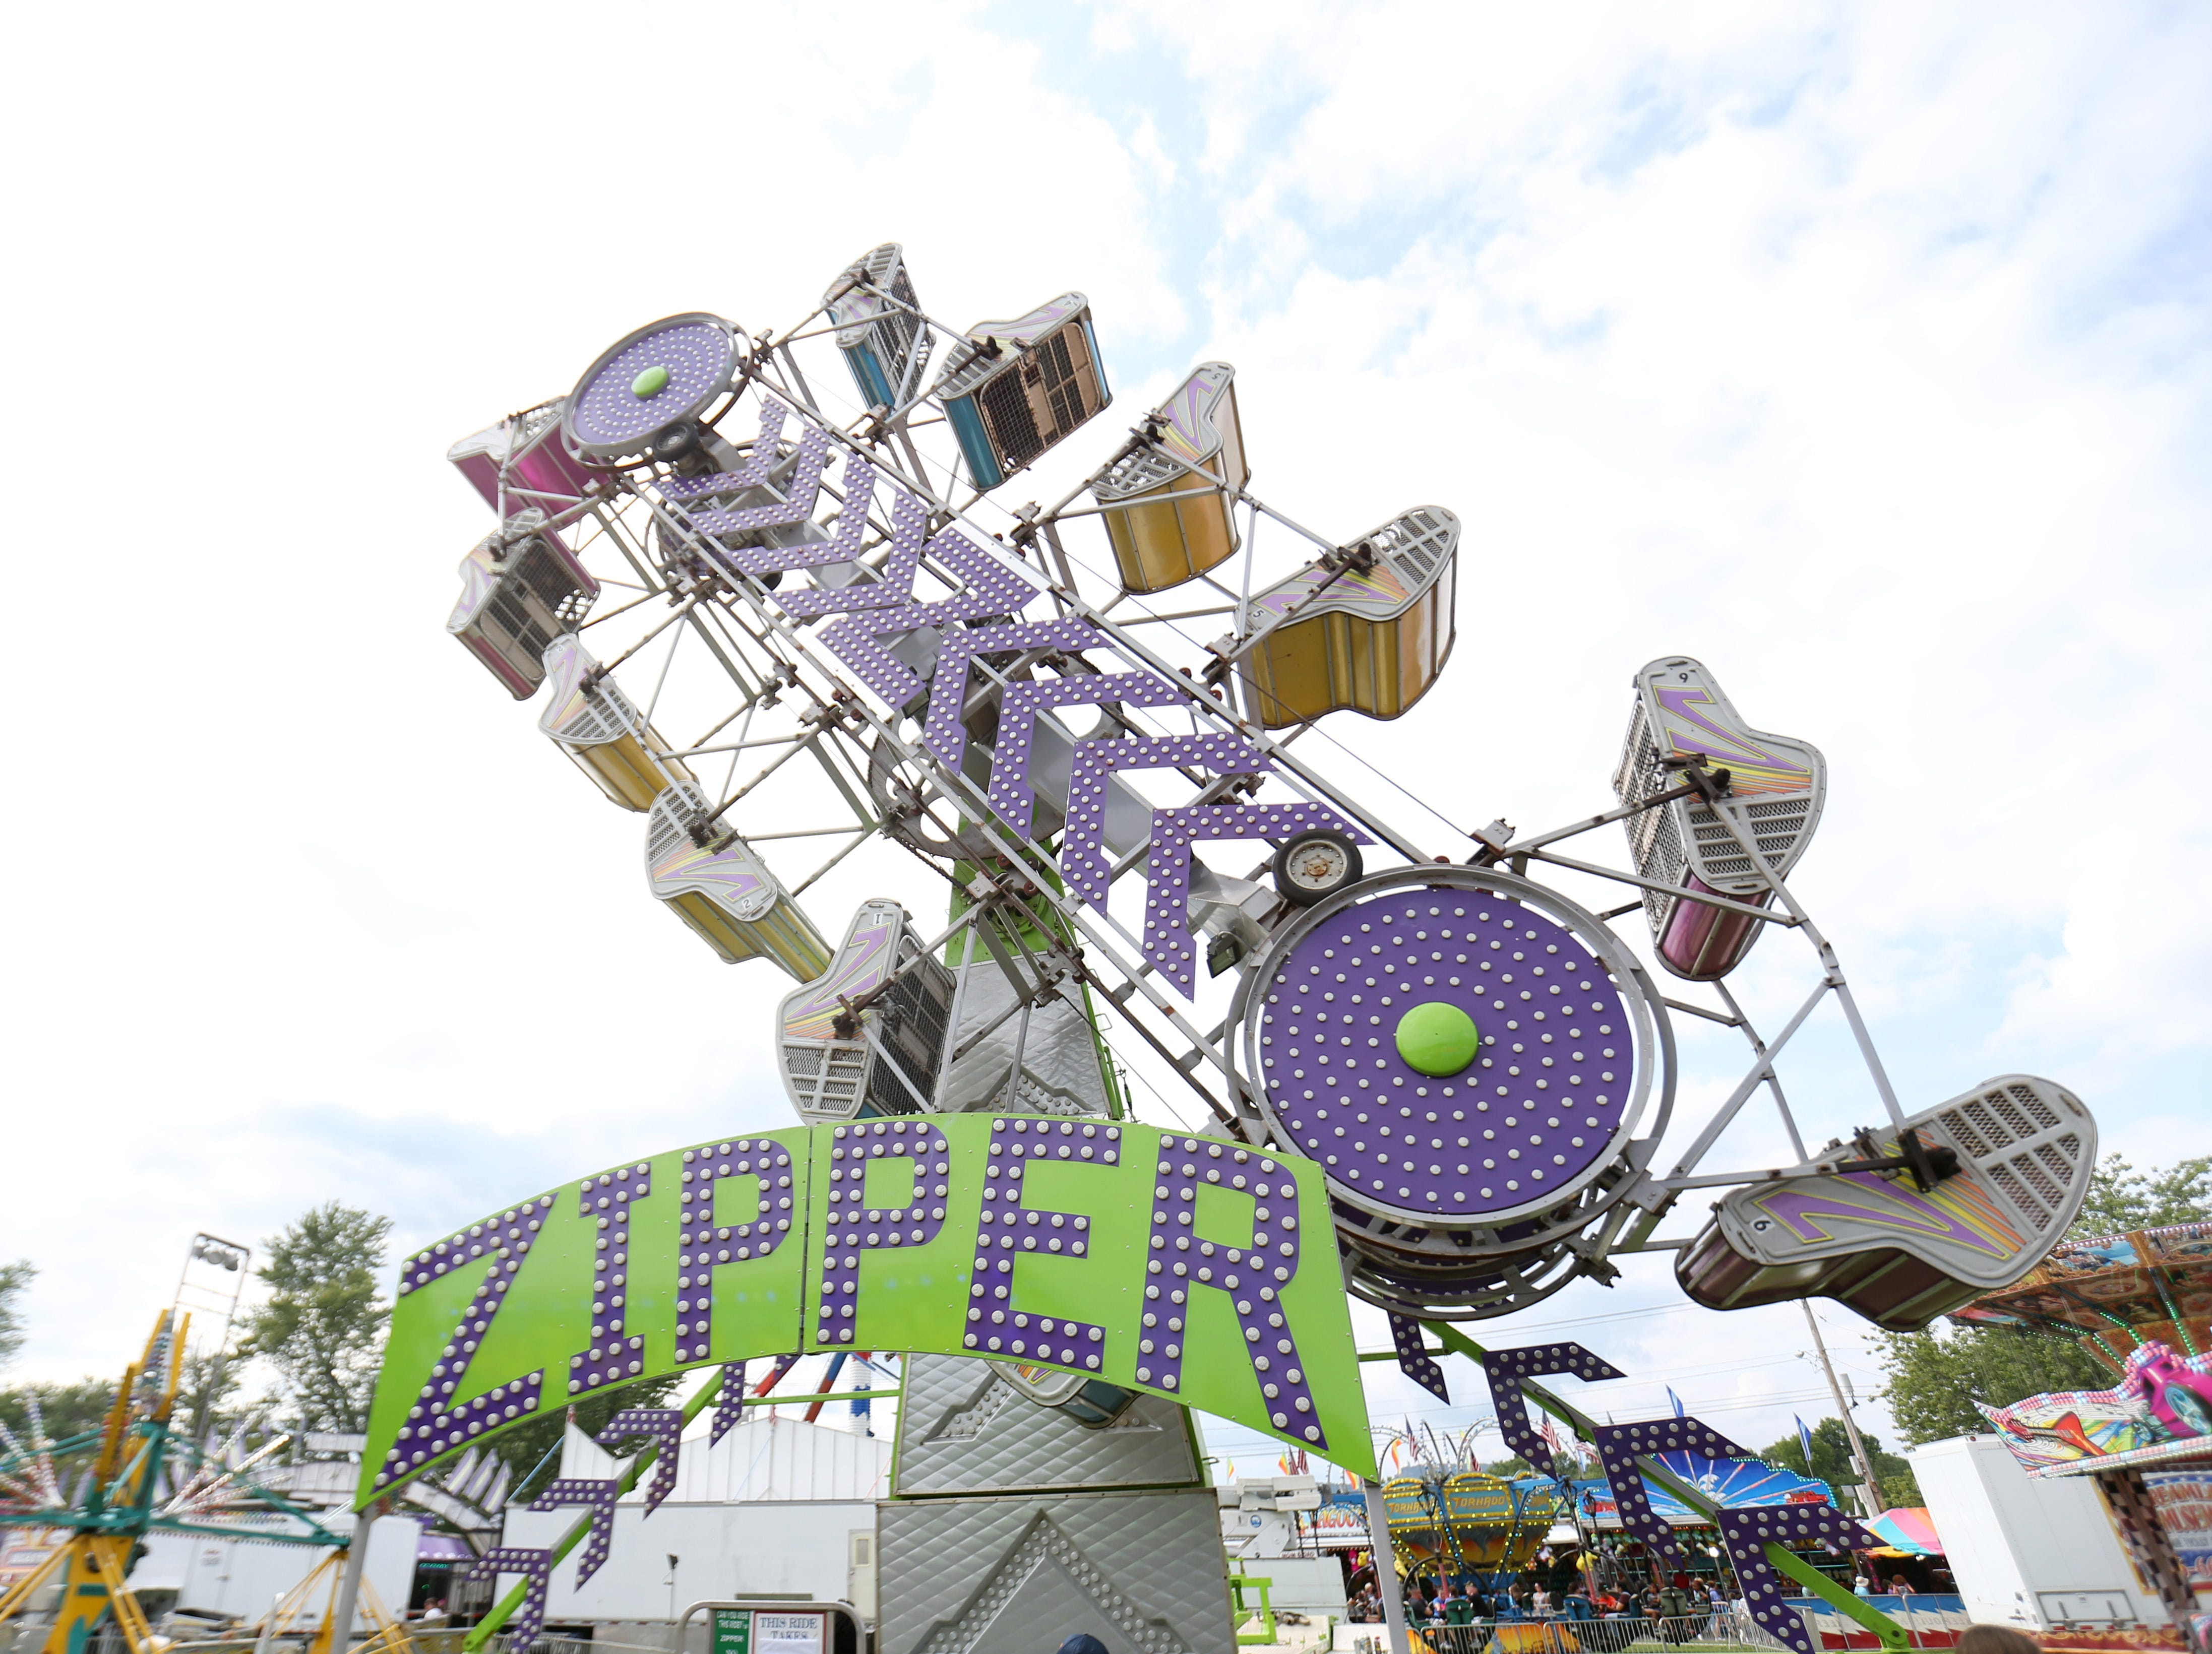 The Zipper zips during the Ulster County Fair in New Paltz on July 31, 2018.